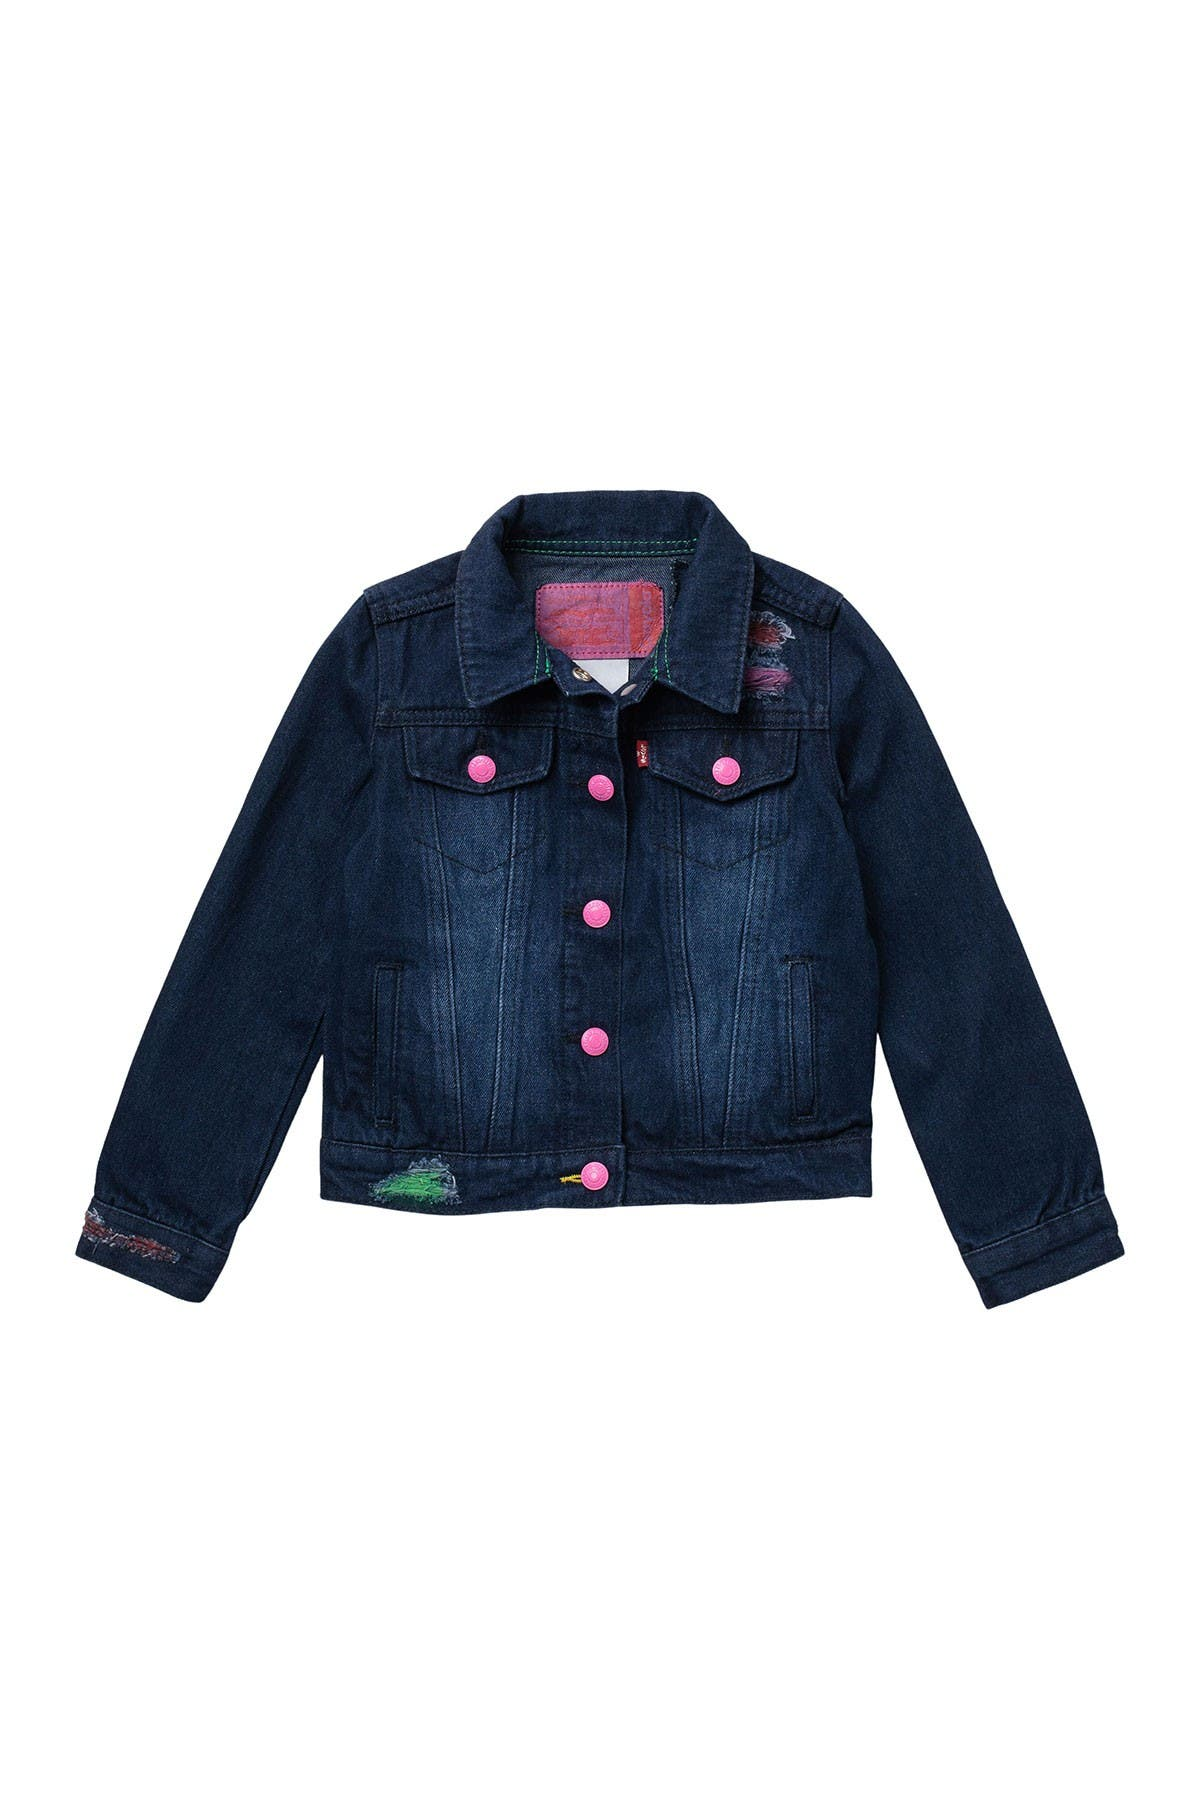 Image of Levi's Denim Trucker Jacket